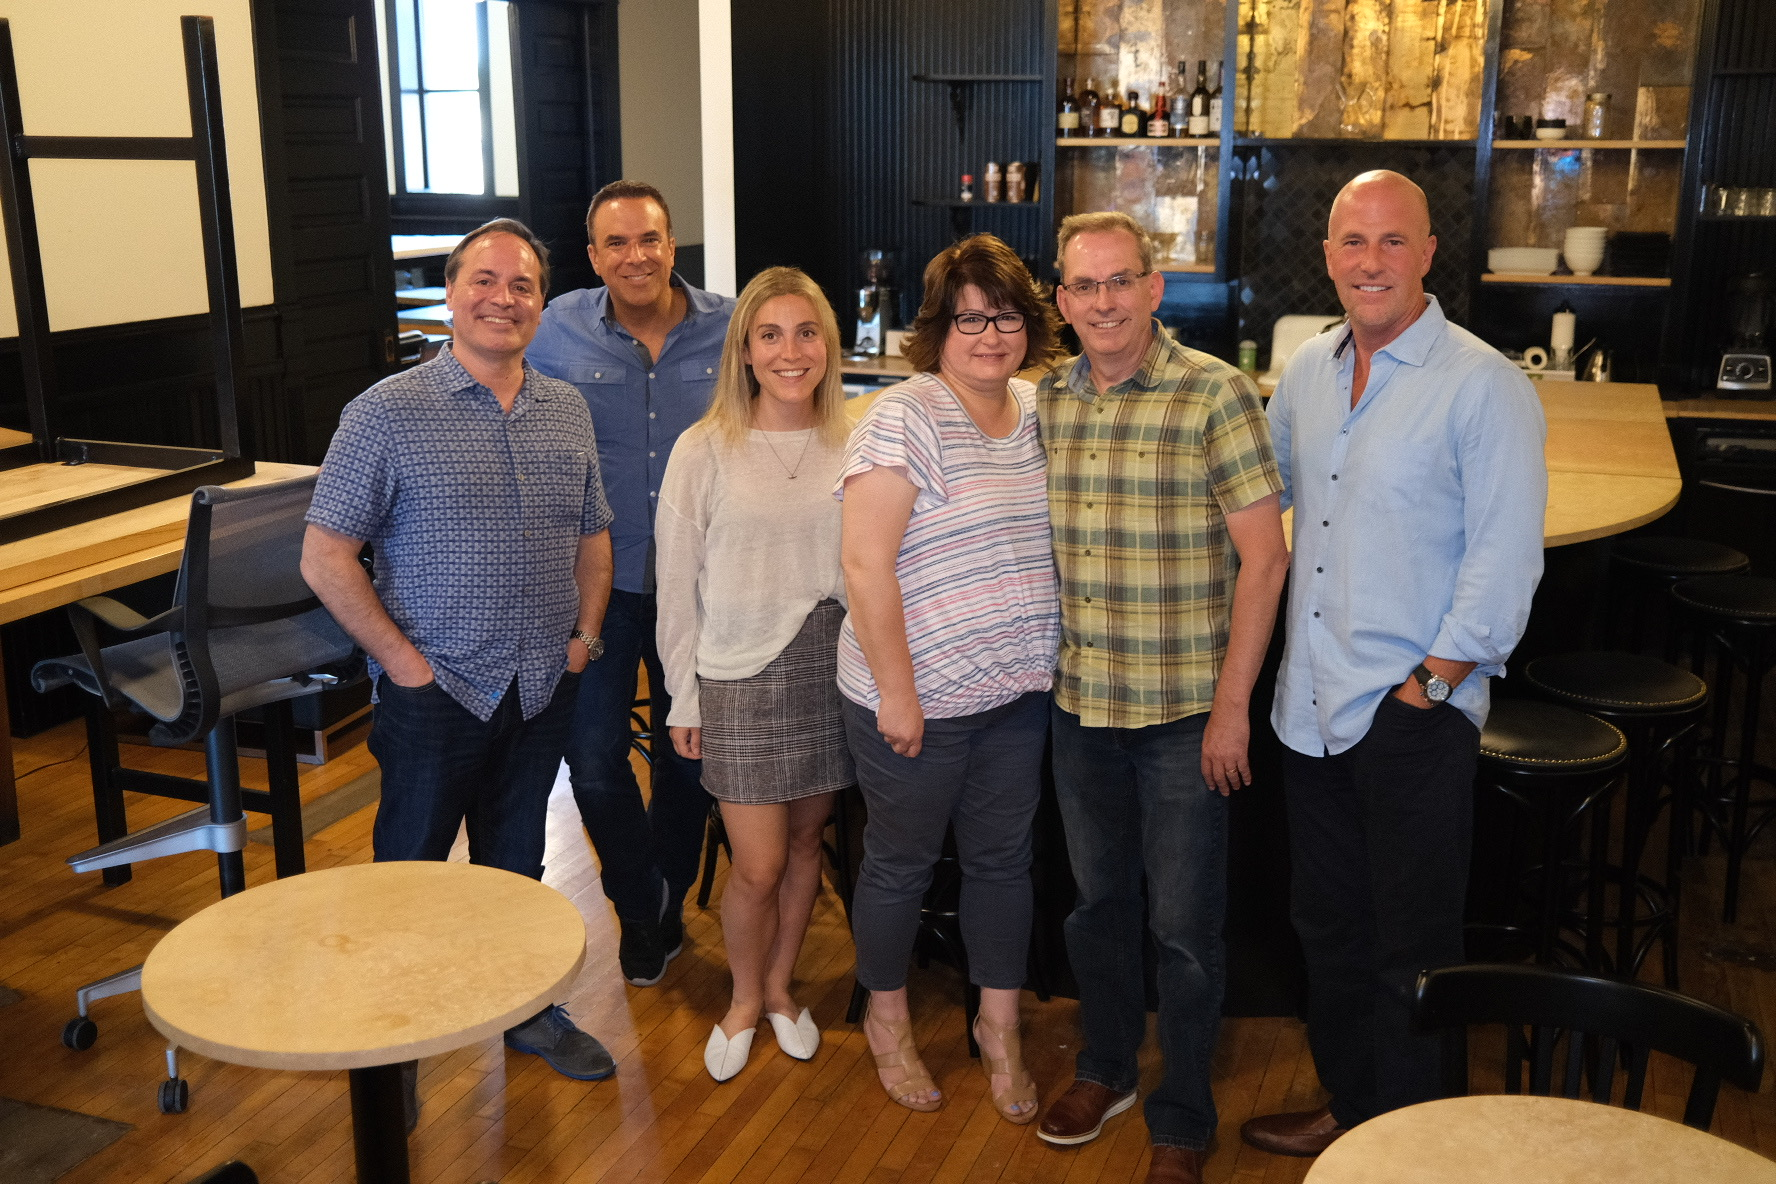 Photo of the VNN Executive Team and WPA Network Co-Owners at VNN's Minneapolis Office